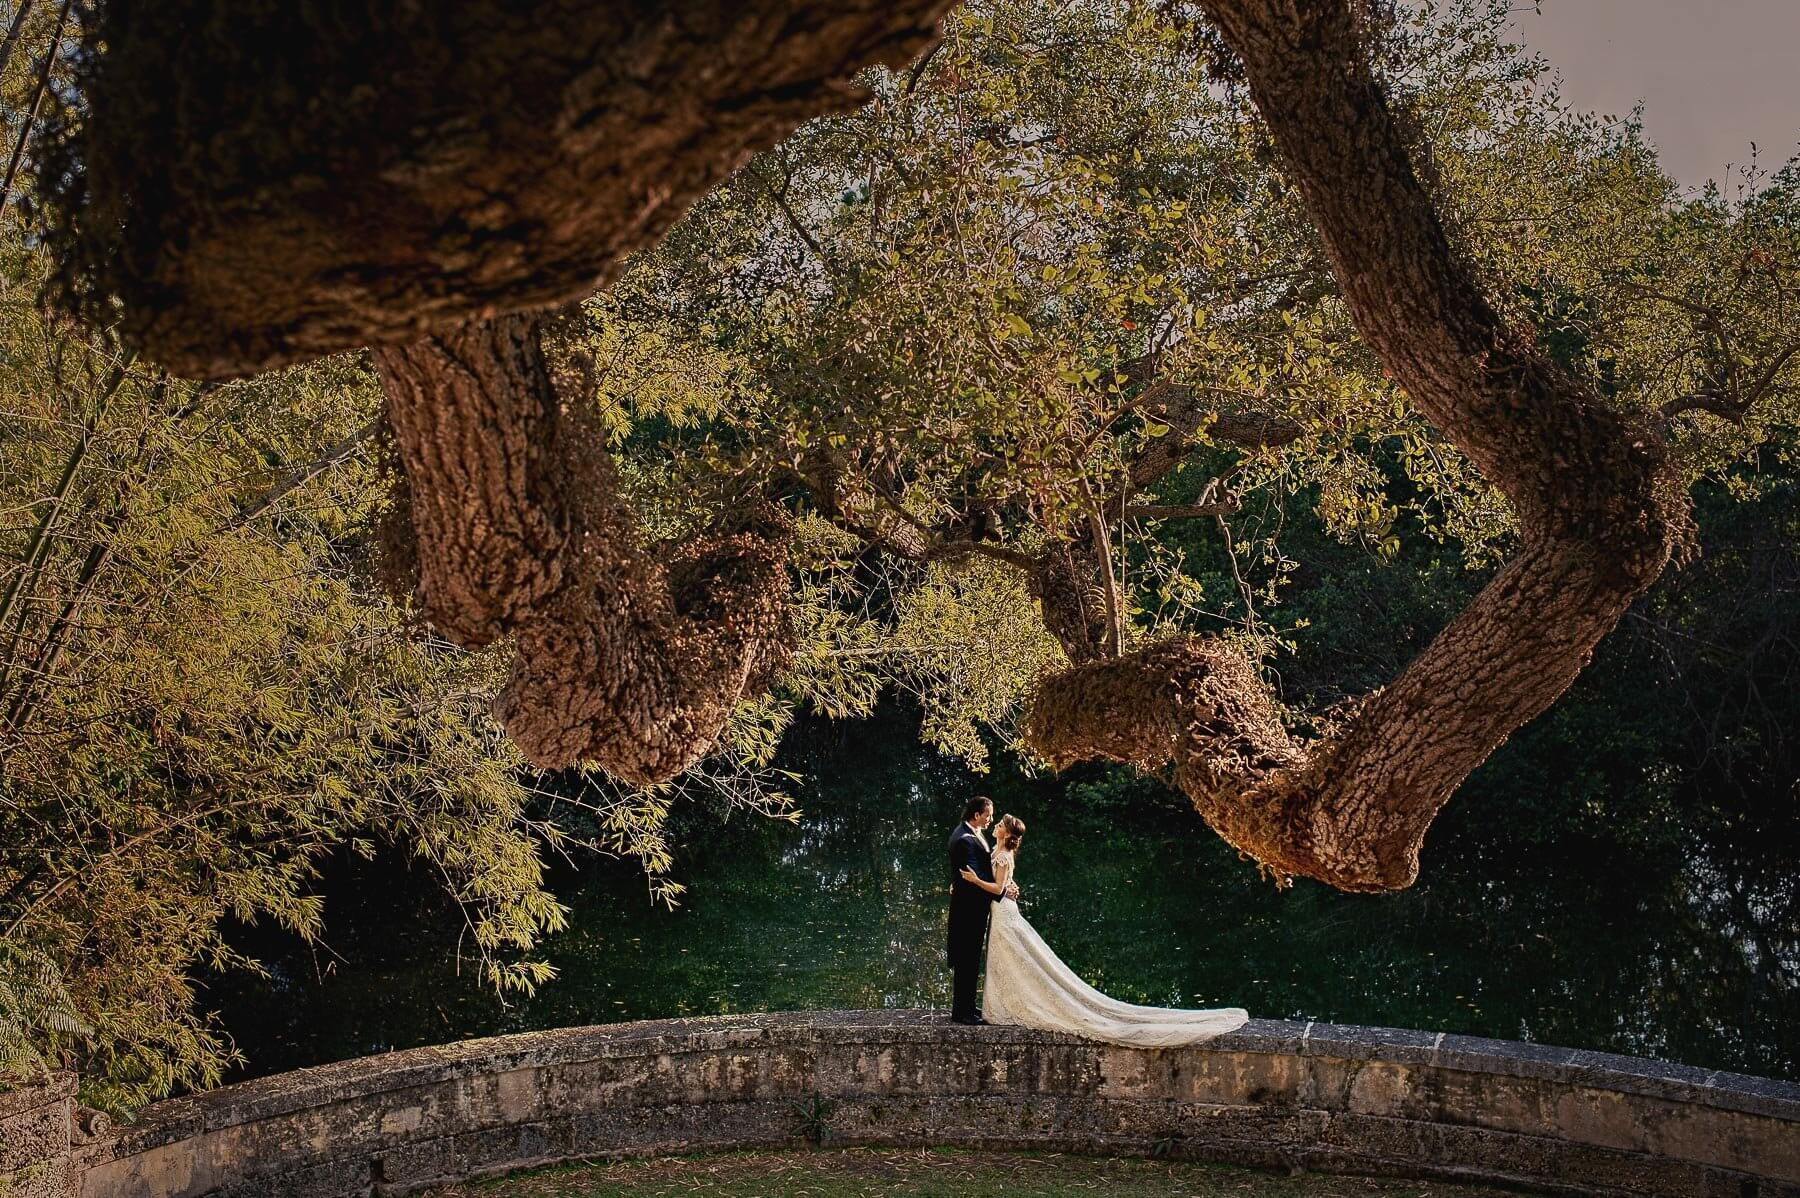 Face to face couple in epic vizcaya setting- photo by Maloman Studios